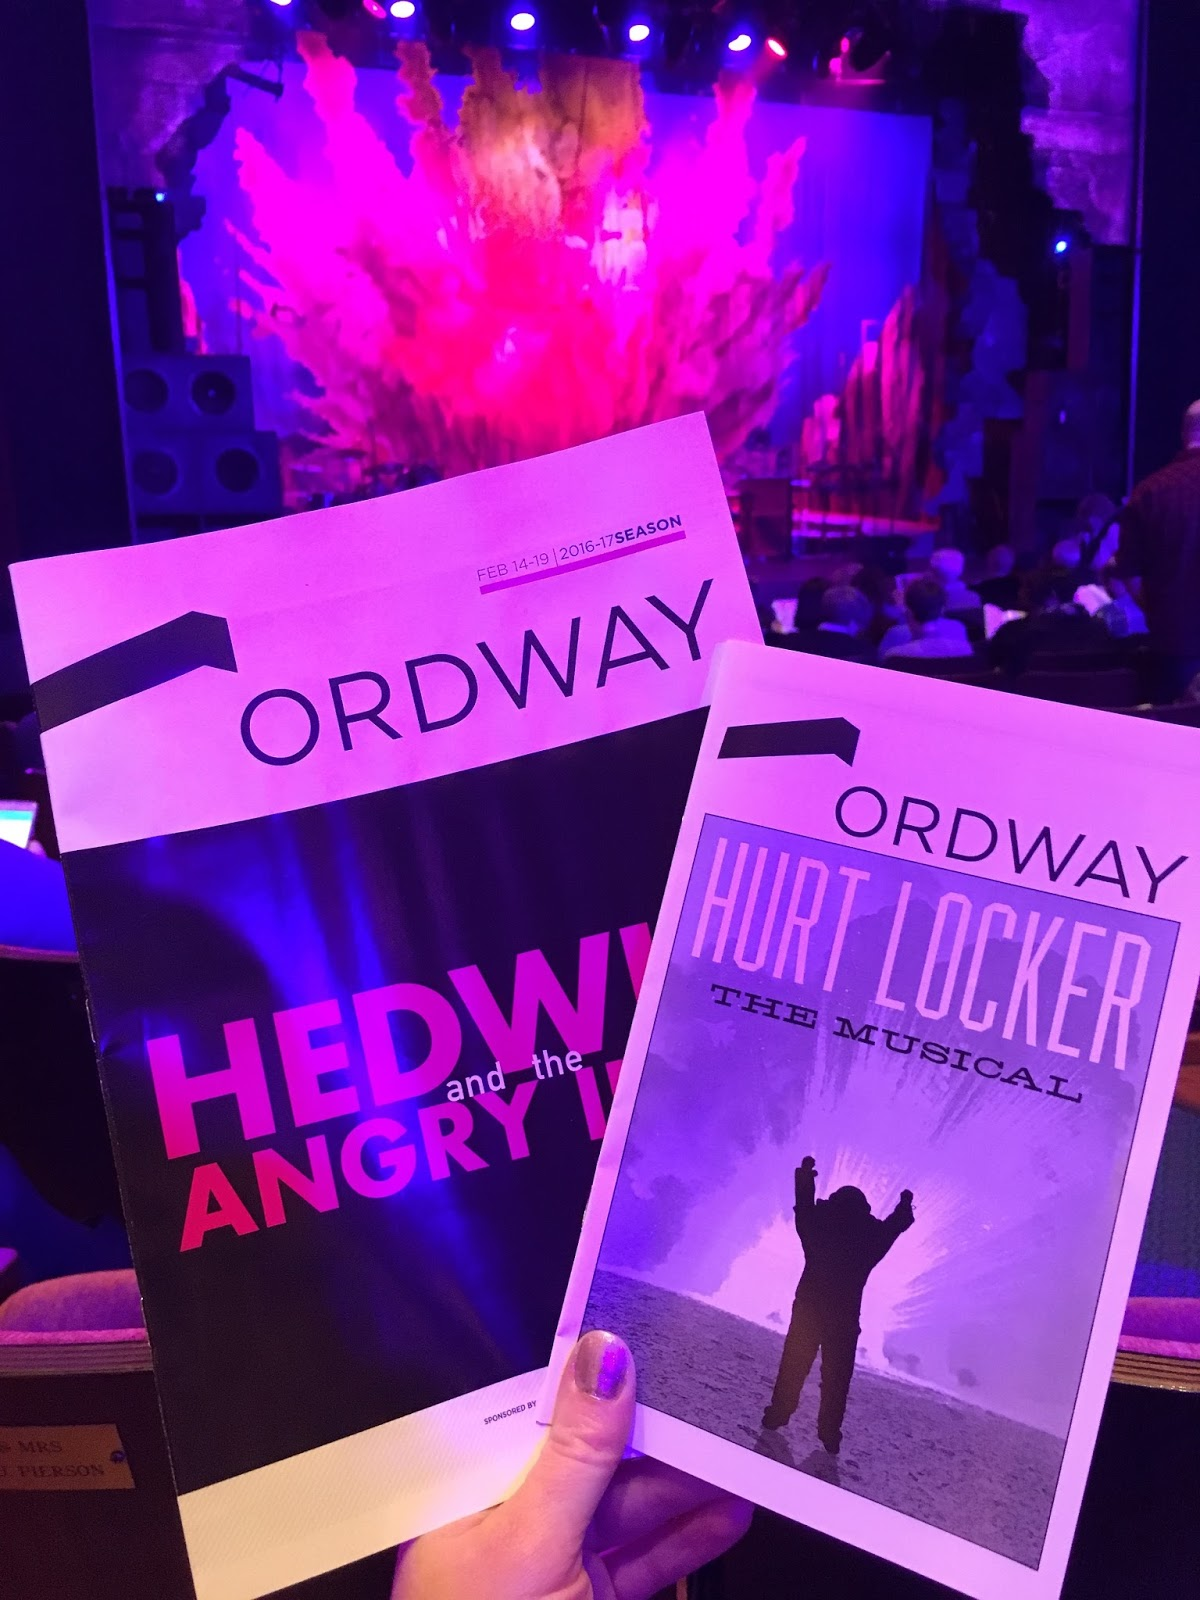 Cherry and spoon hedwig and the angry inch on tour at the ordway hedwig and the angry inch on tour at the ordway biocorpaavc